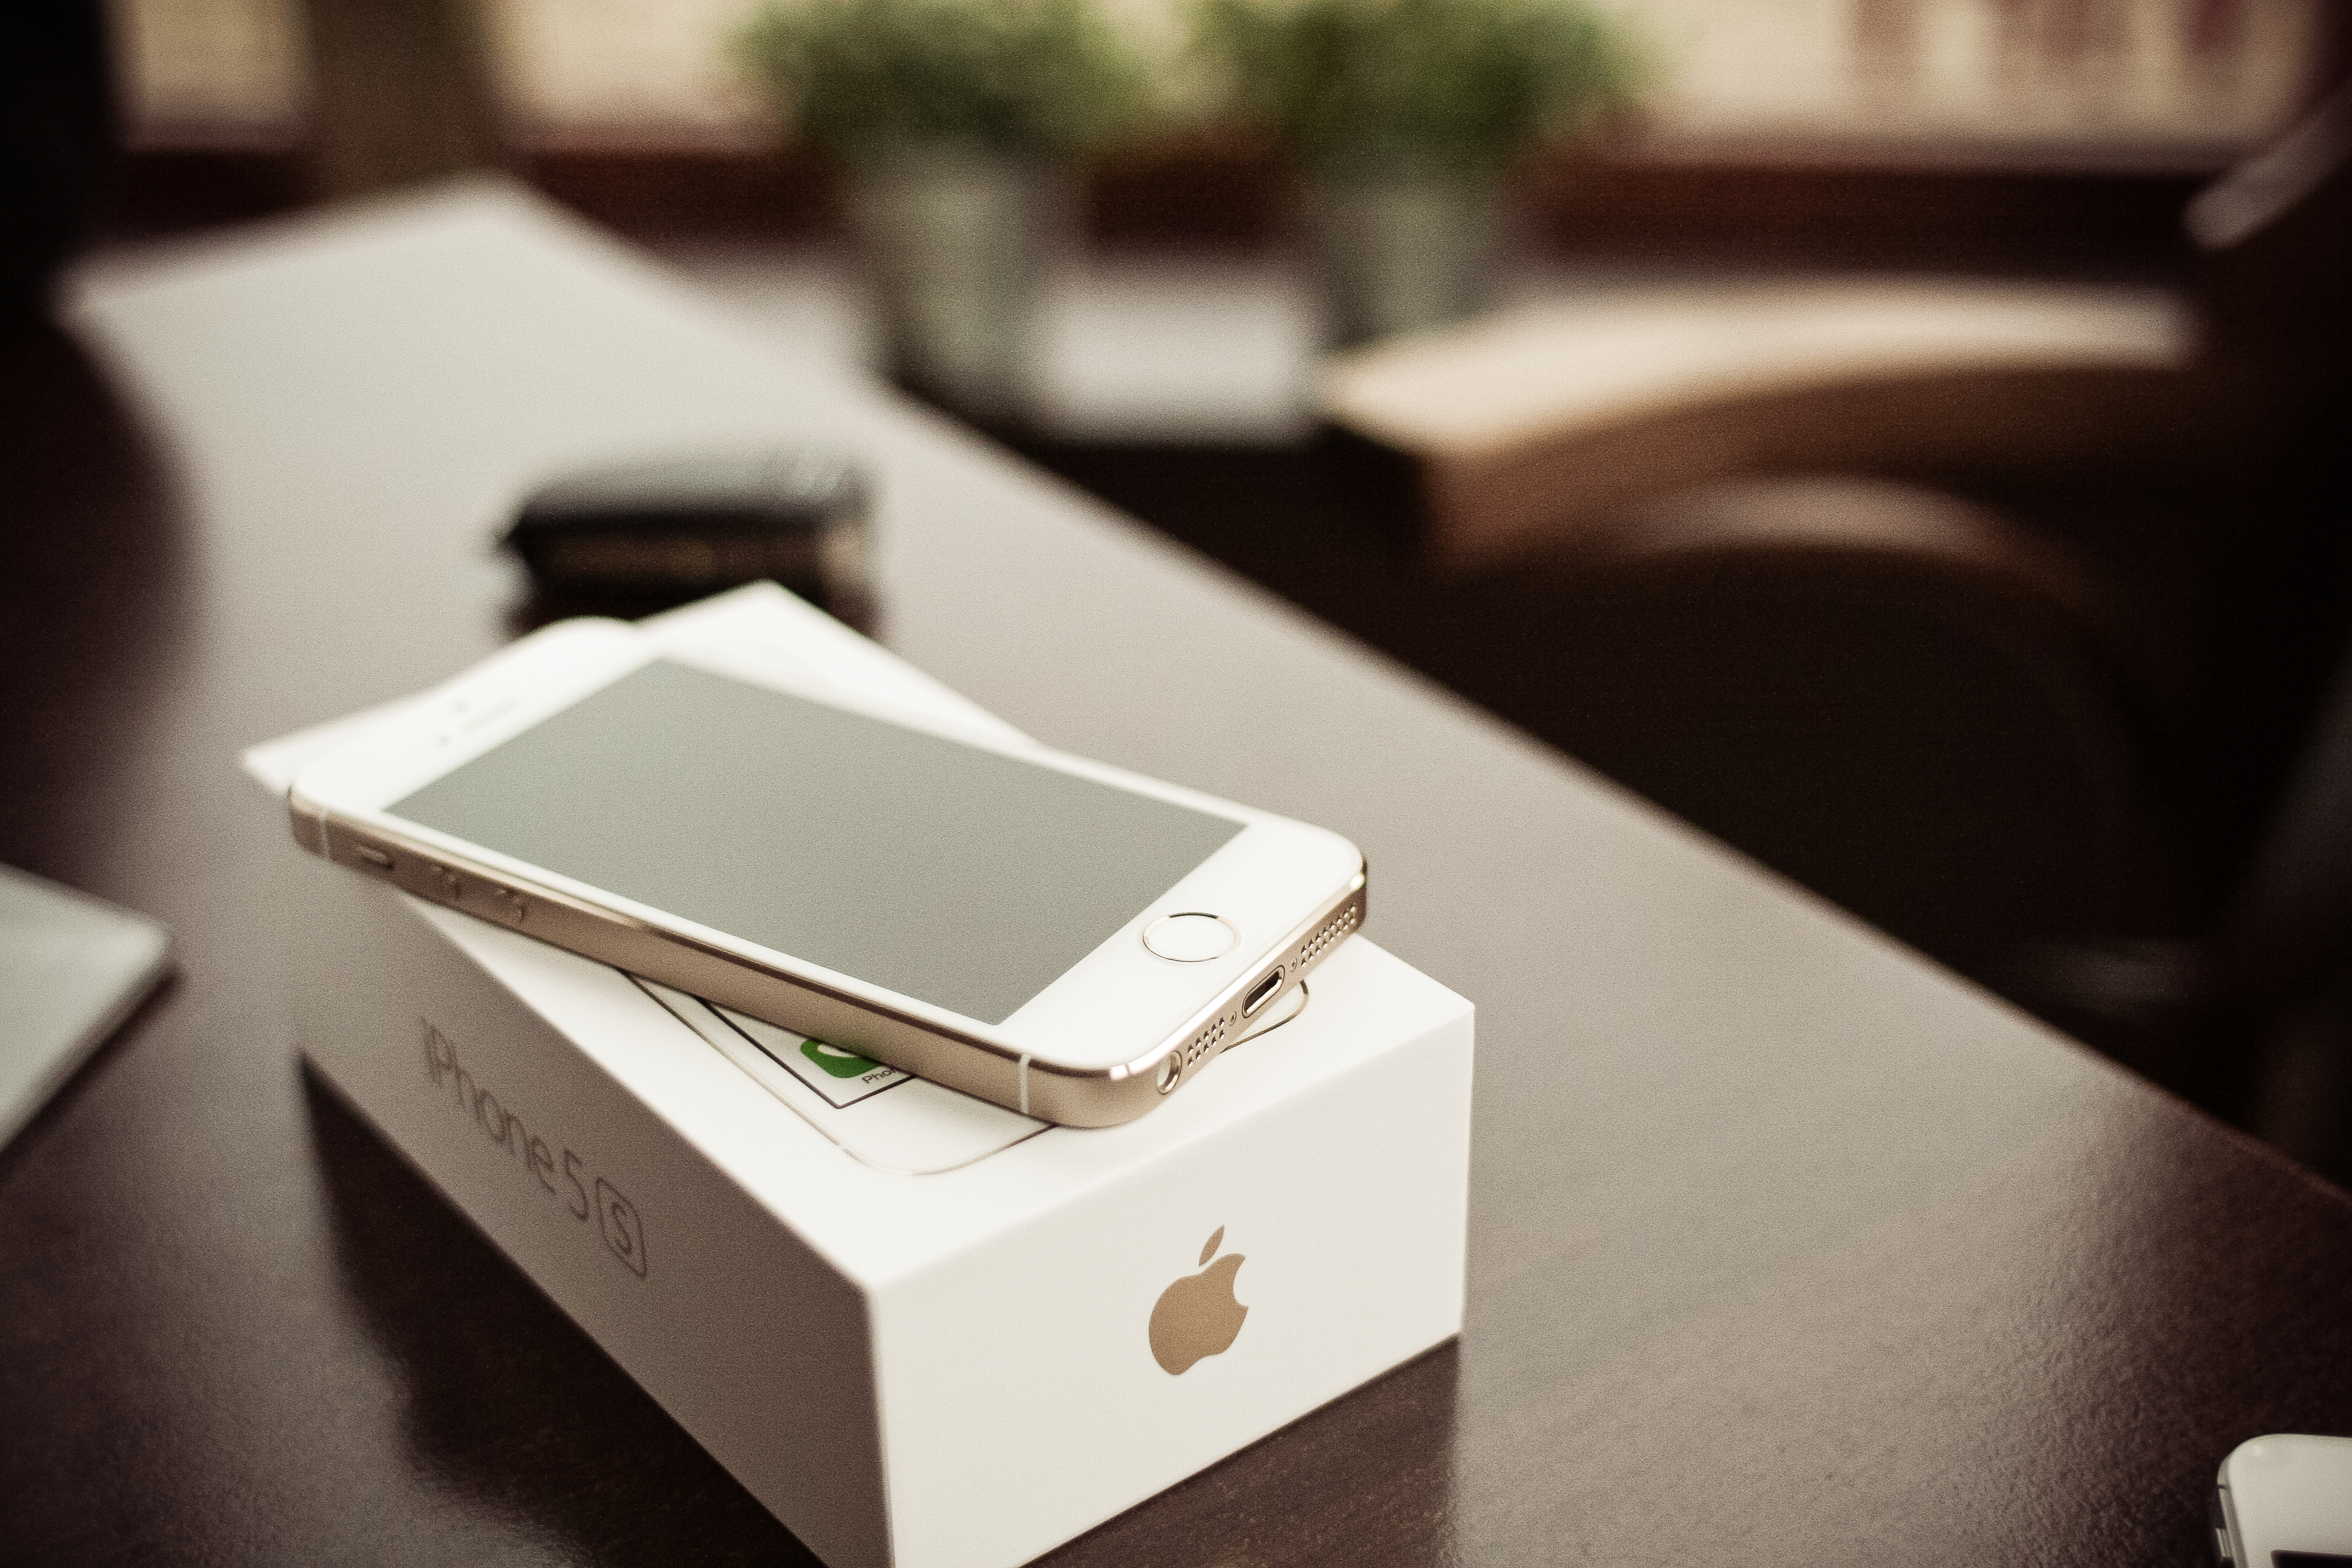 iphone-5s-gold-with-a-box-picjumbo-com